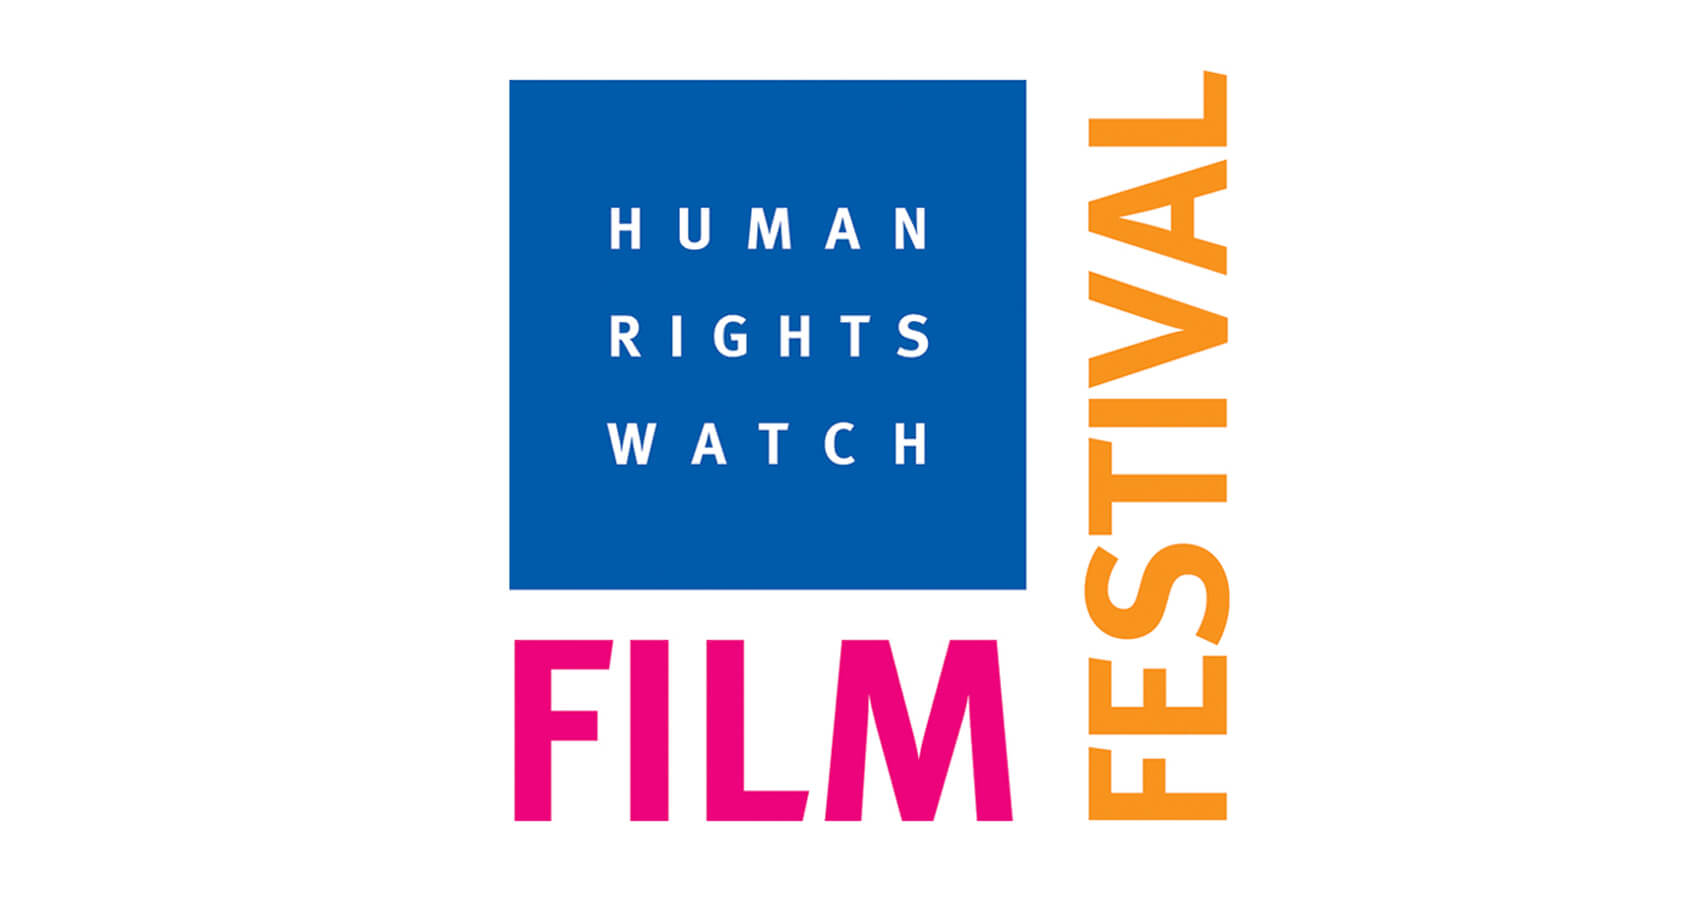 Human Rights Film Festival in NYC & New Delhi